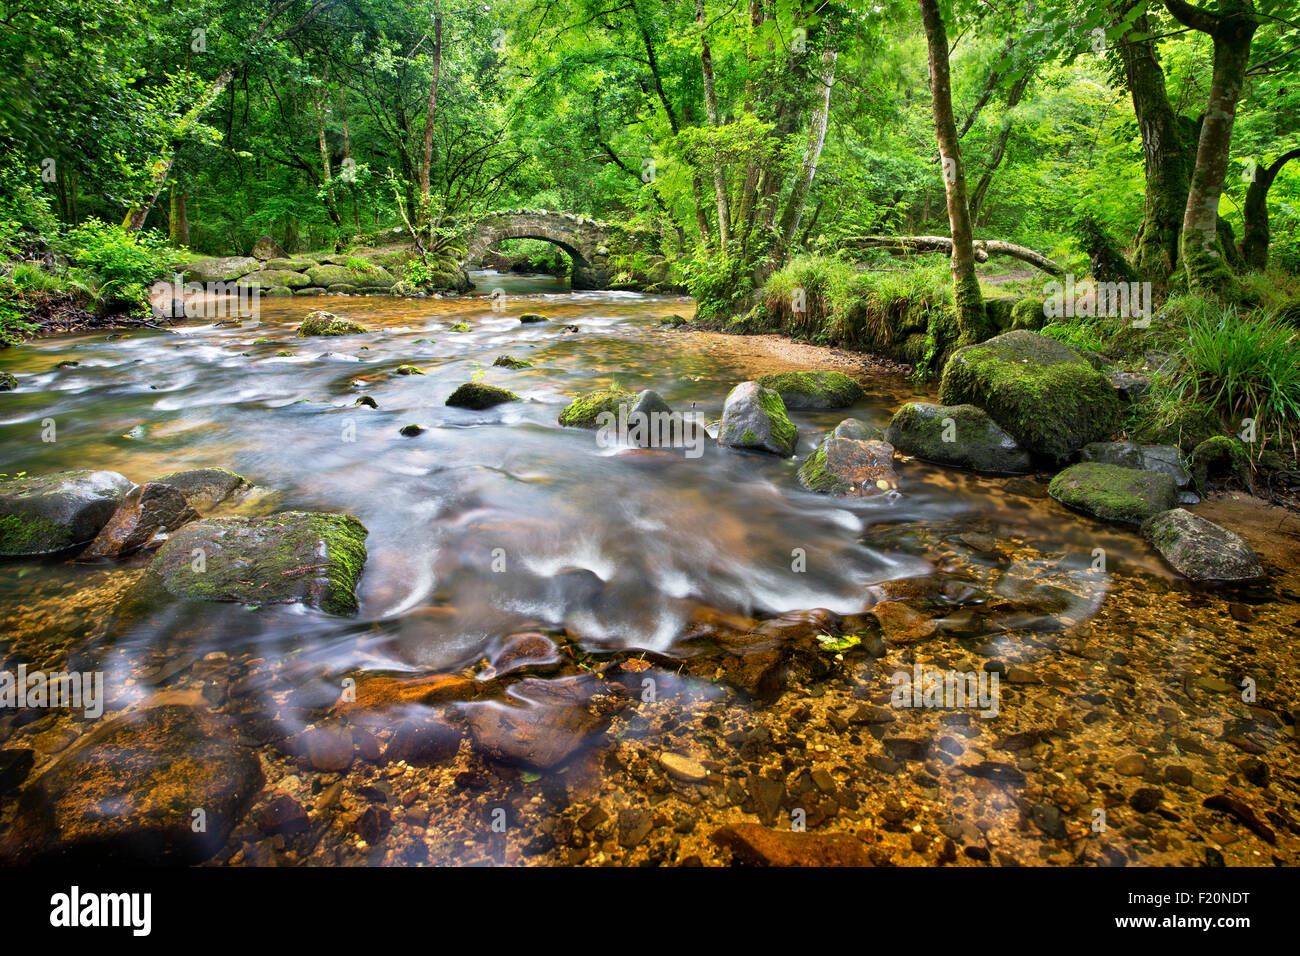 Hisley Bridge on the river Bovey on Dartmoor, Devon, UK - Stock Image